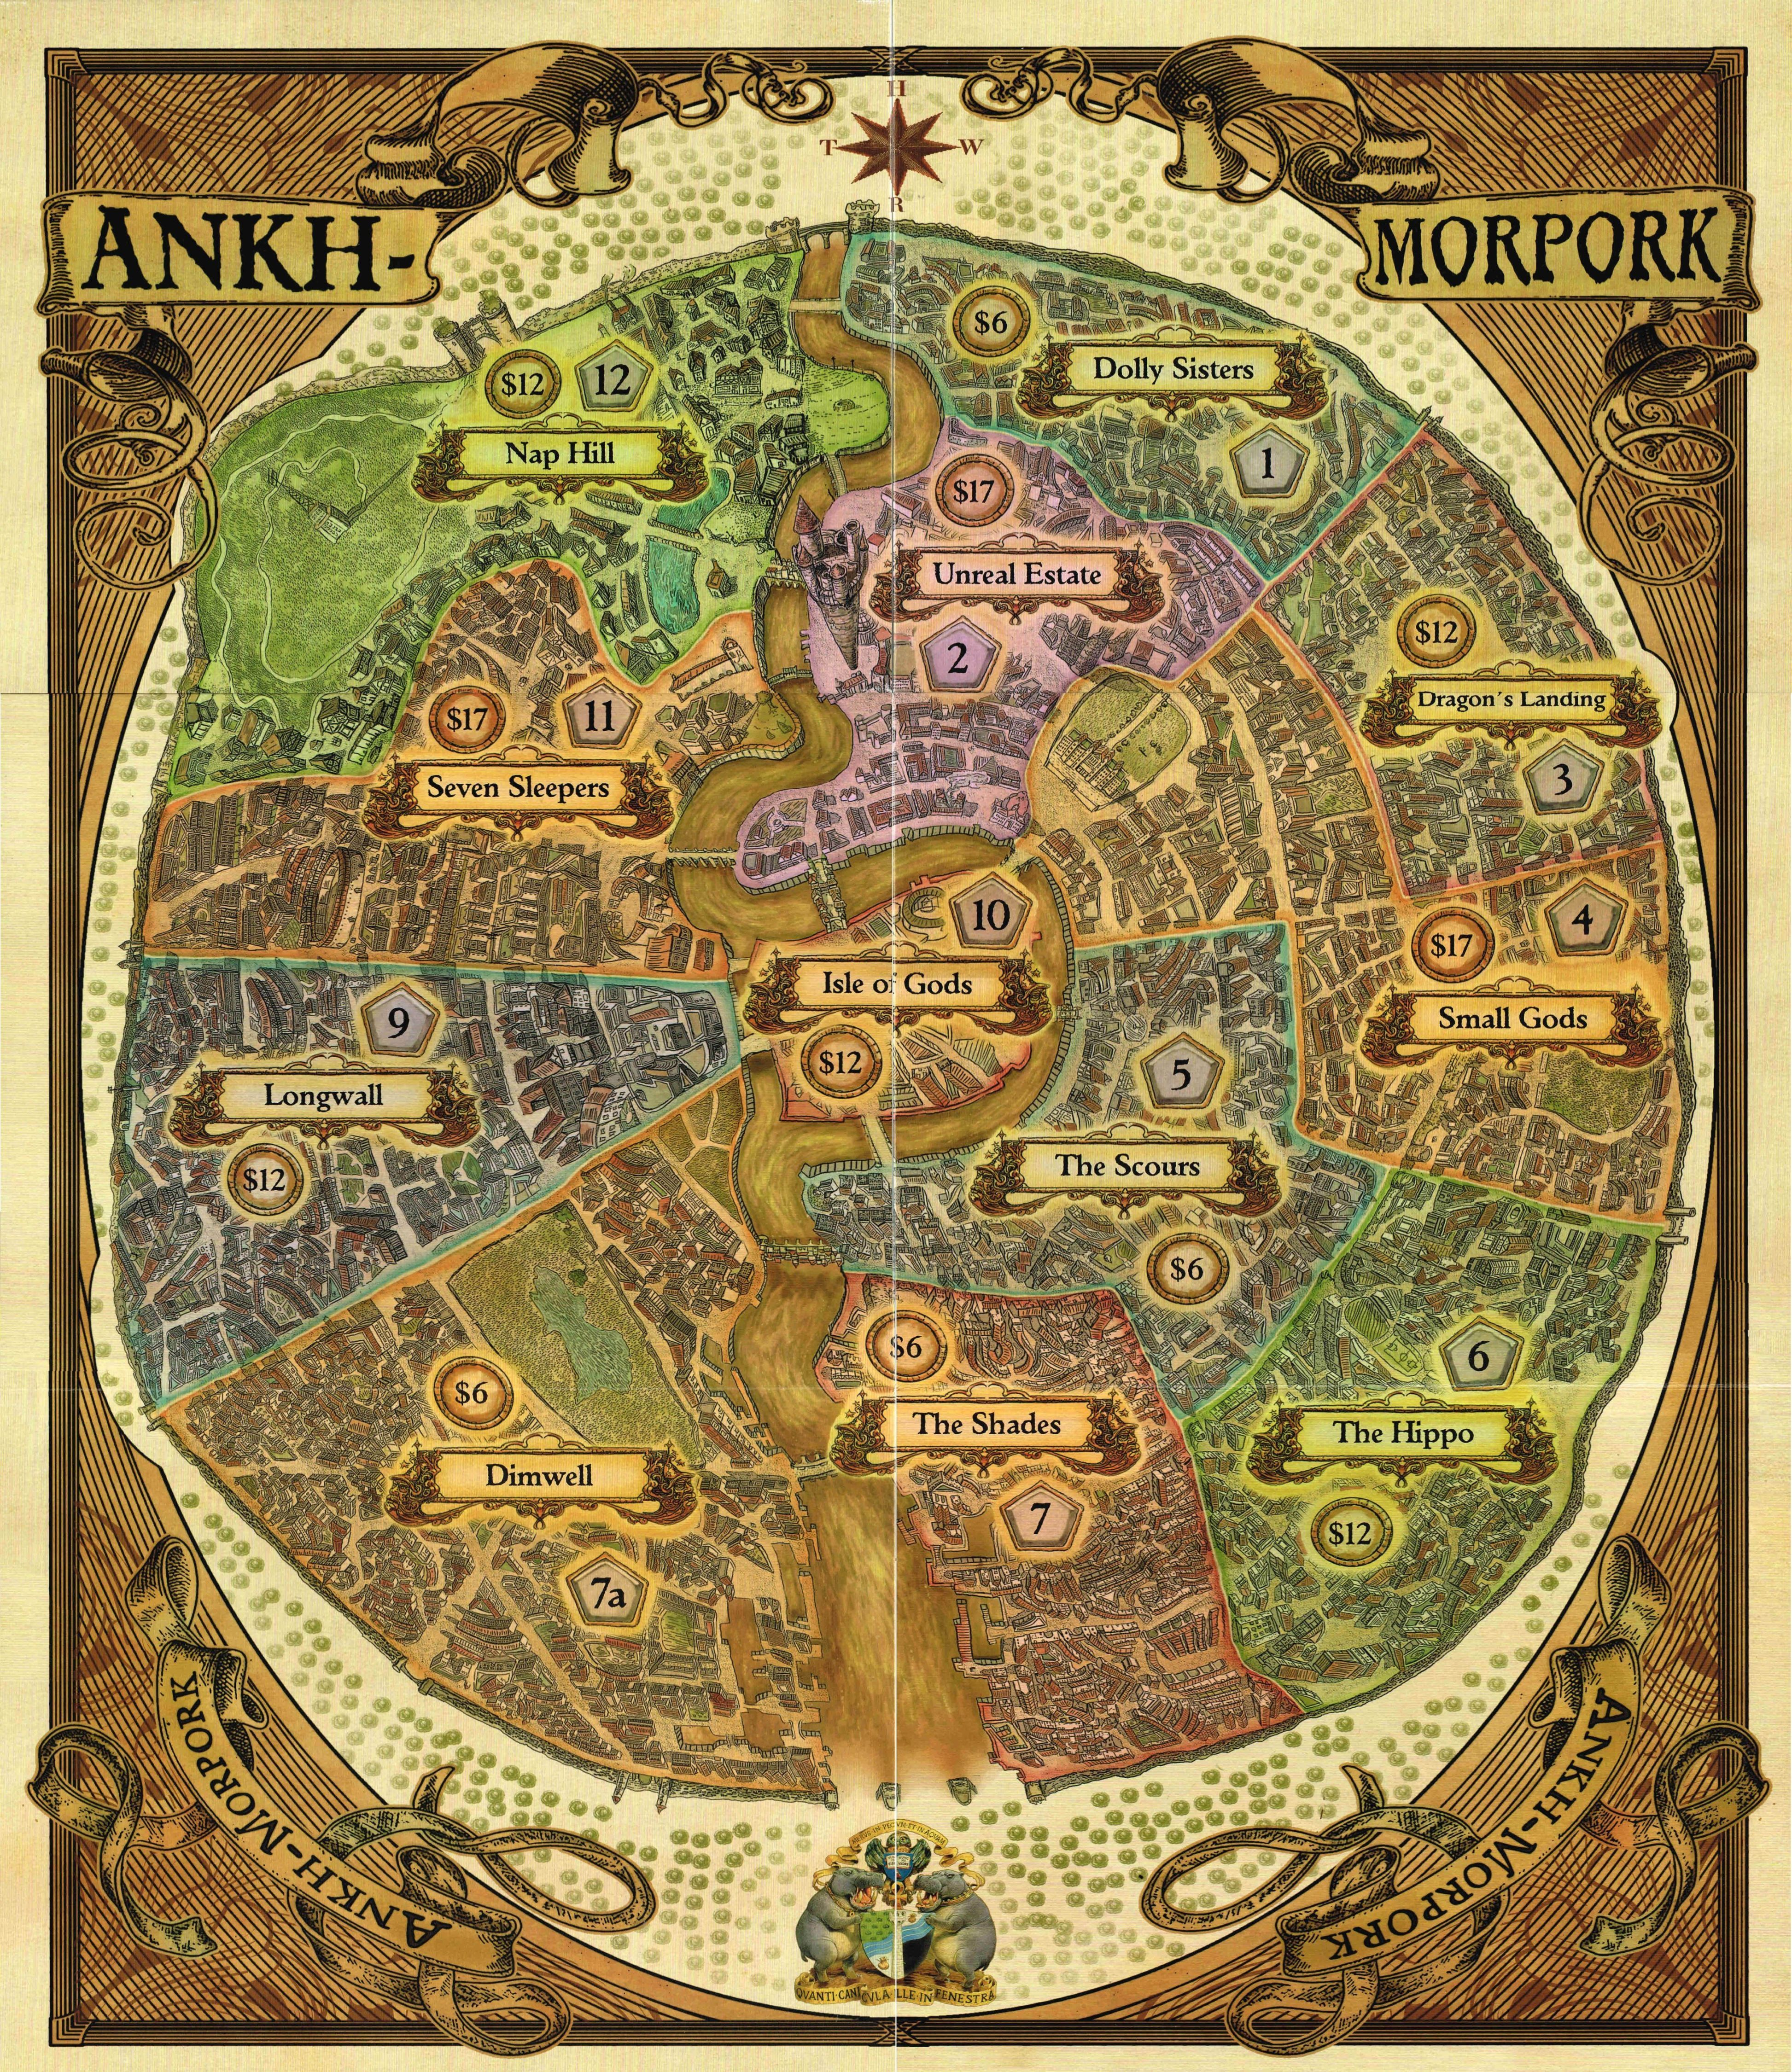 Ankh Morpork Map Discworld: Ankh Morpork | Board Game photos | Terry pratchett